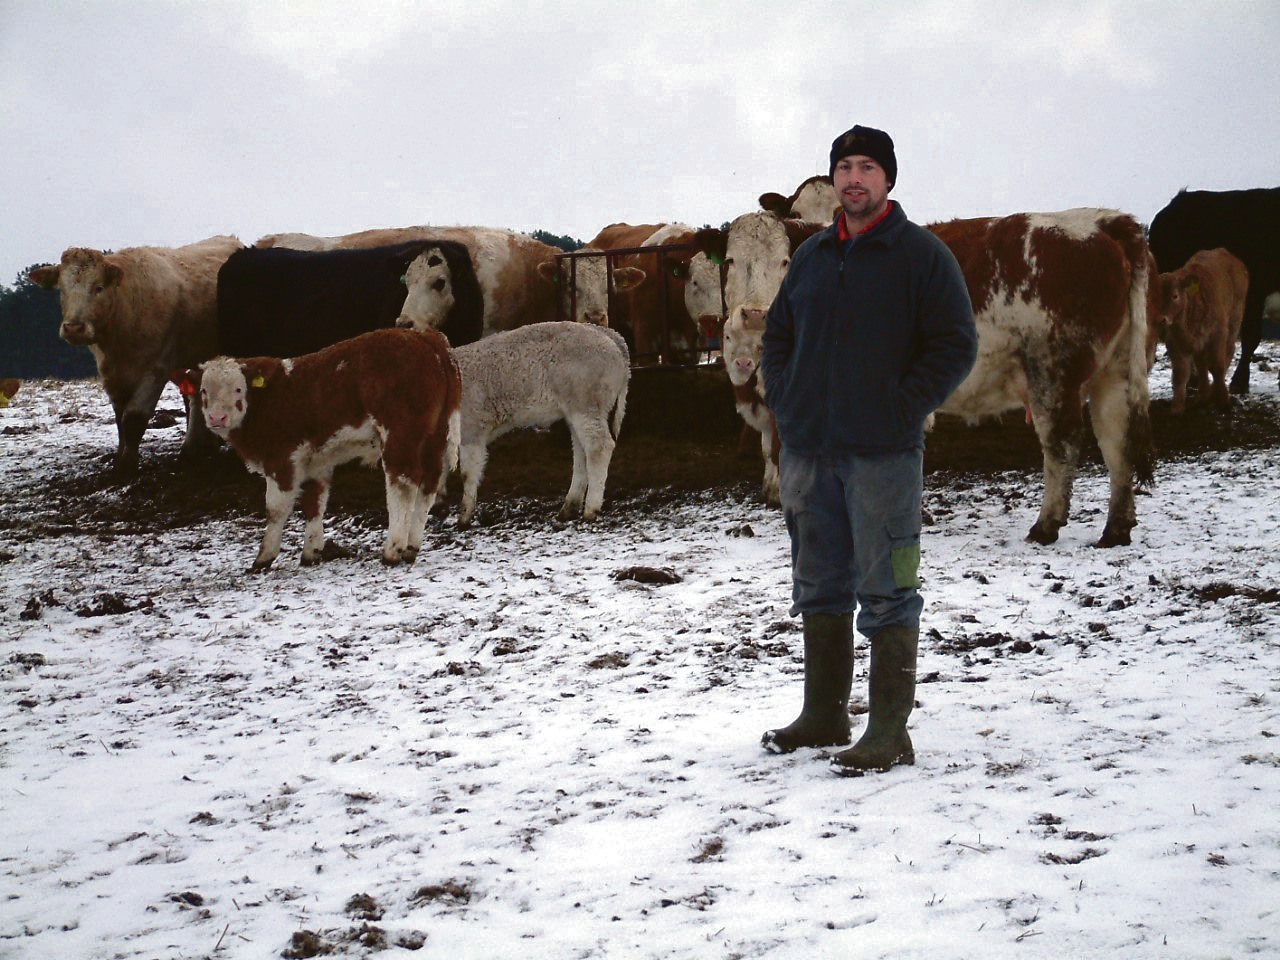 Tightening calving patterns has helped fit in two calving periods with a busy contracting schedule, says William Deans